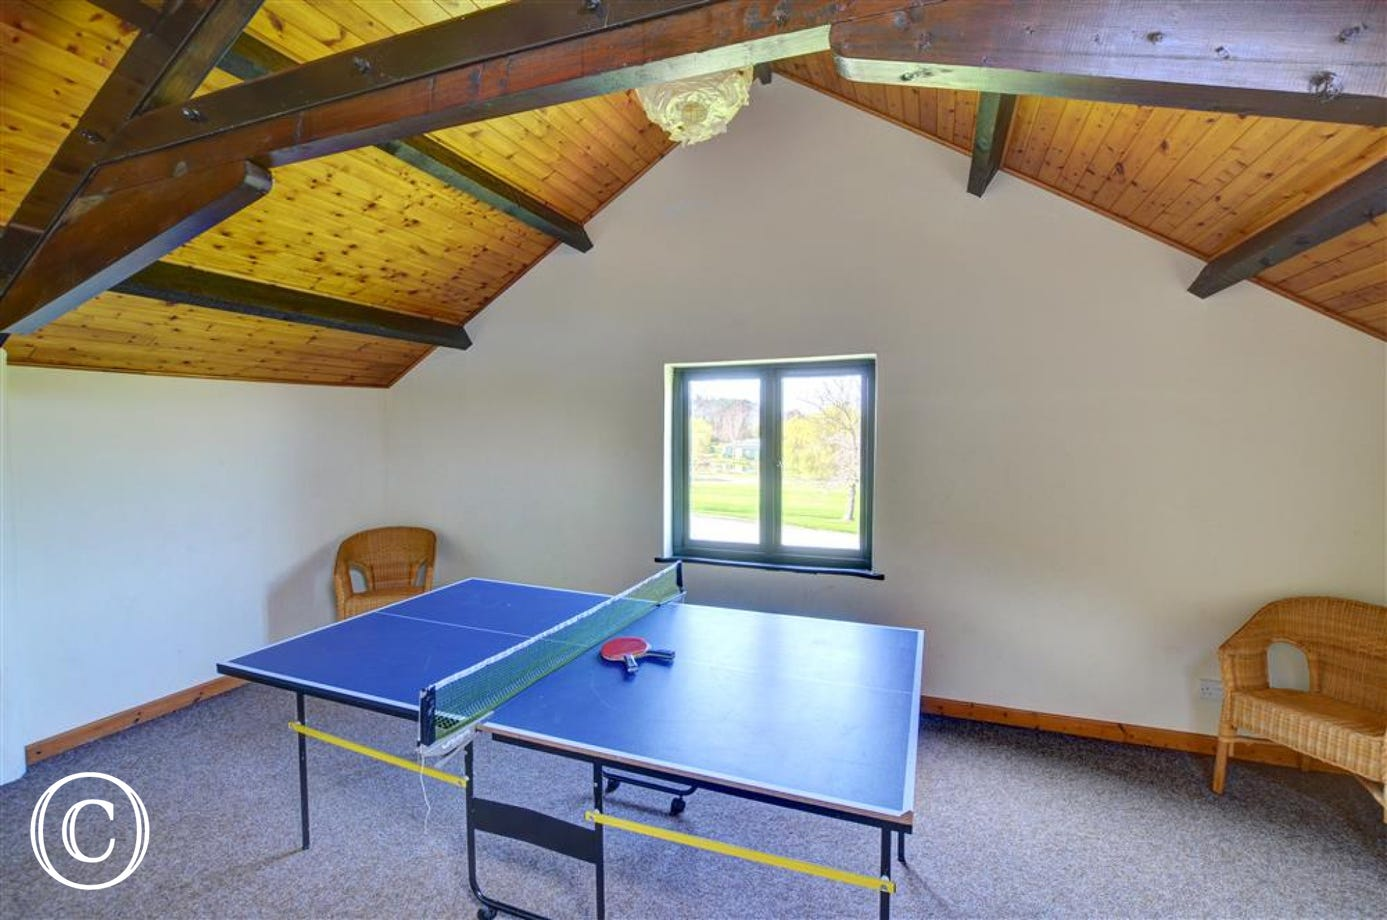 Gellidywyll - Shared Games Room View 2